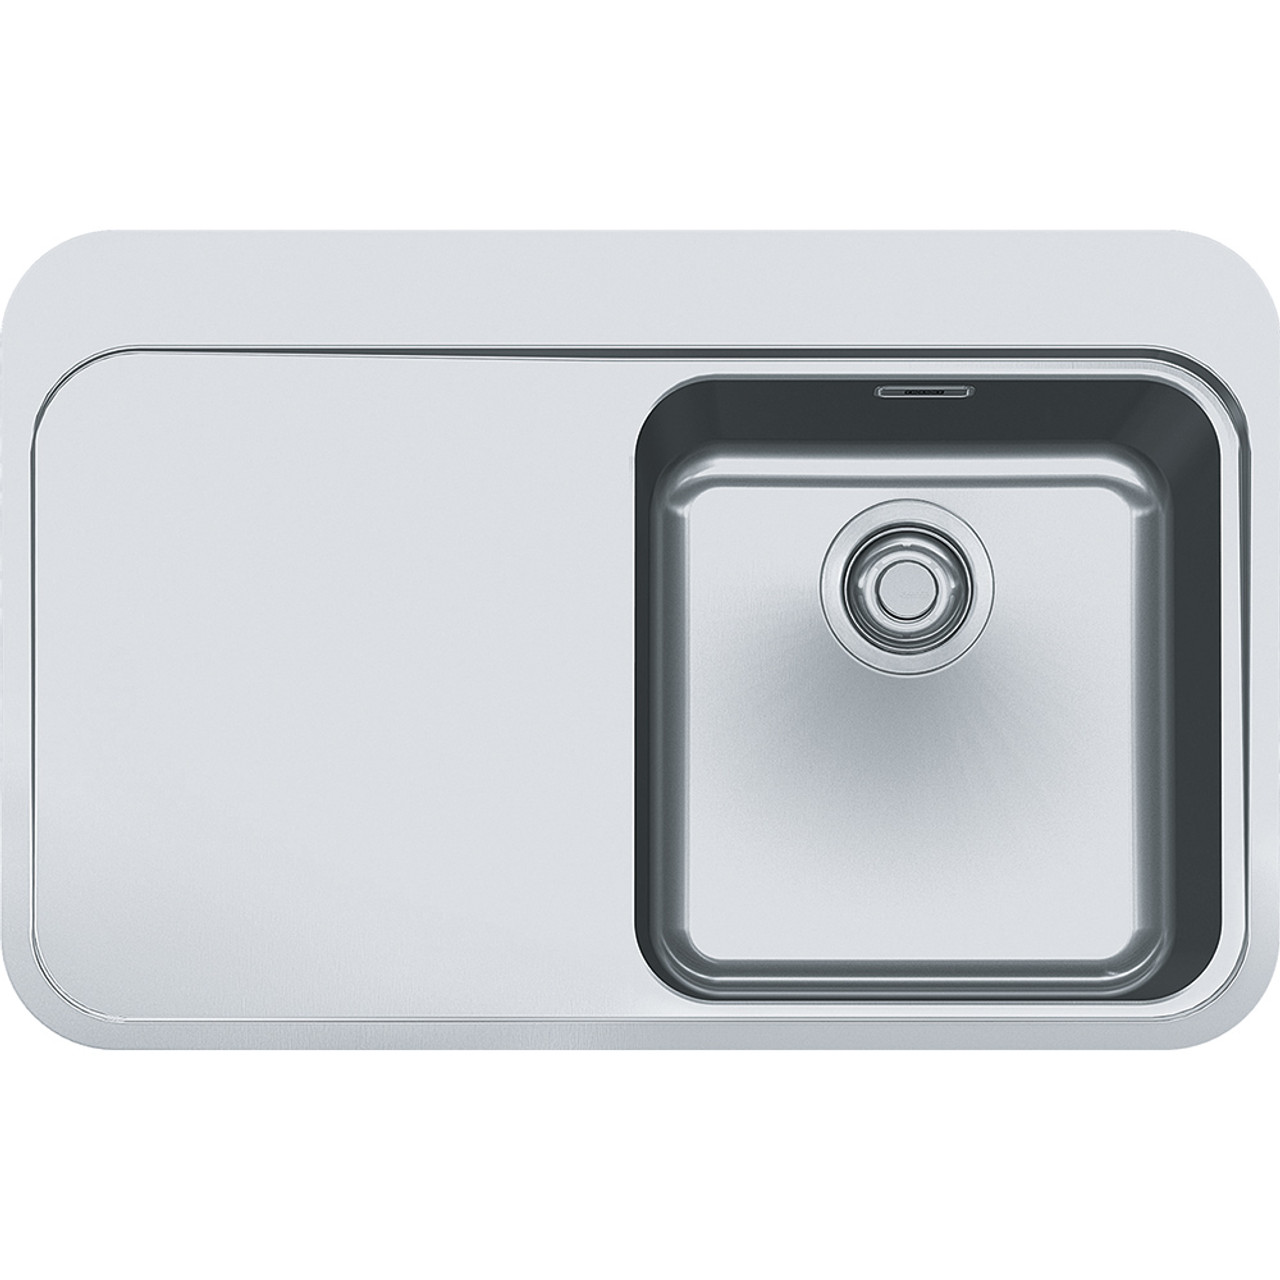 Stainless Steel Sinks   Inset and Undermount Sinks